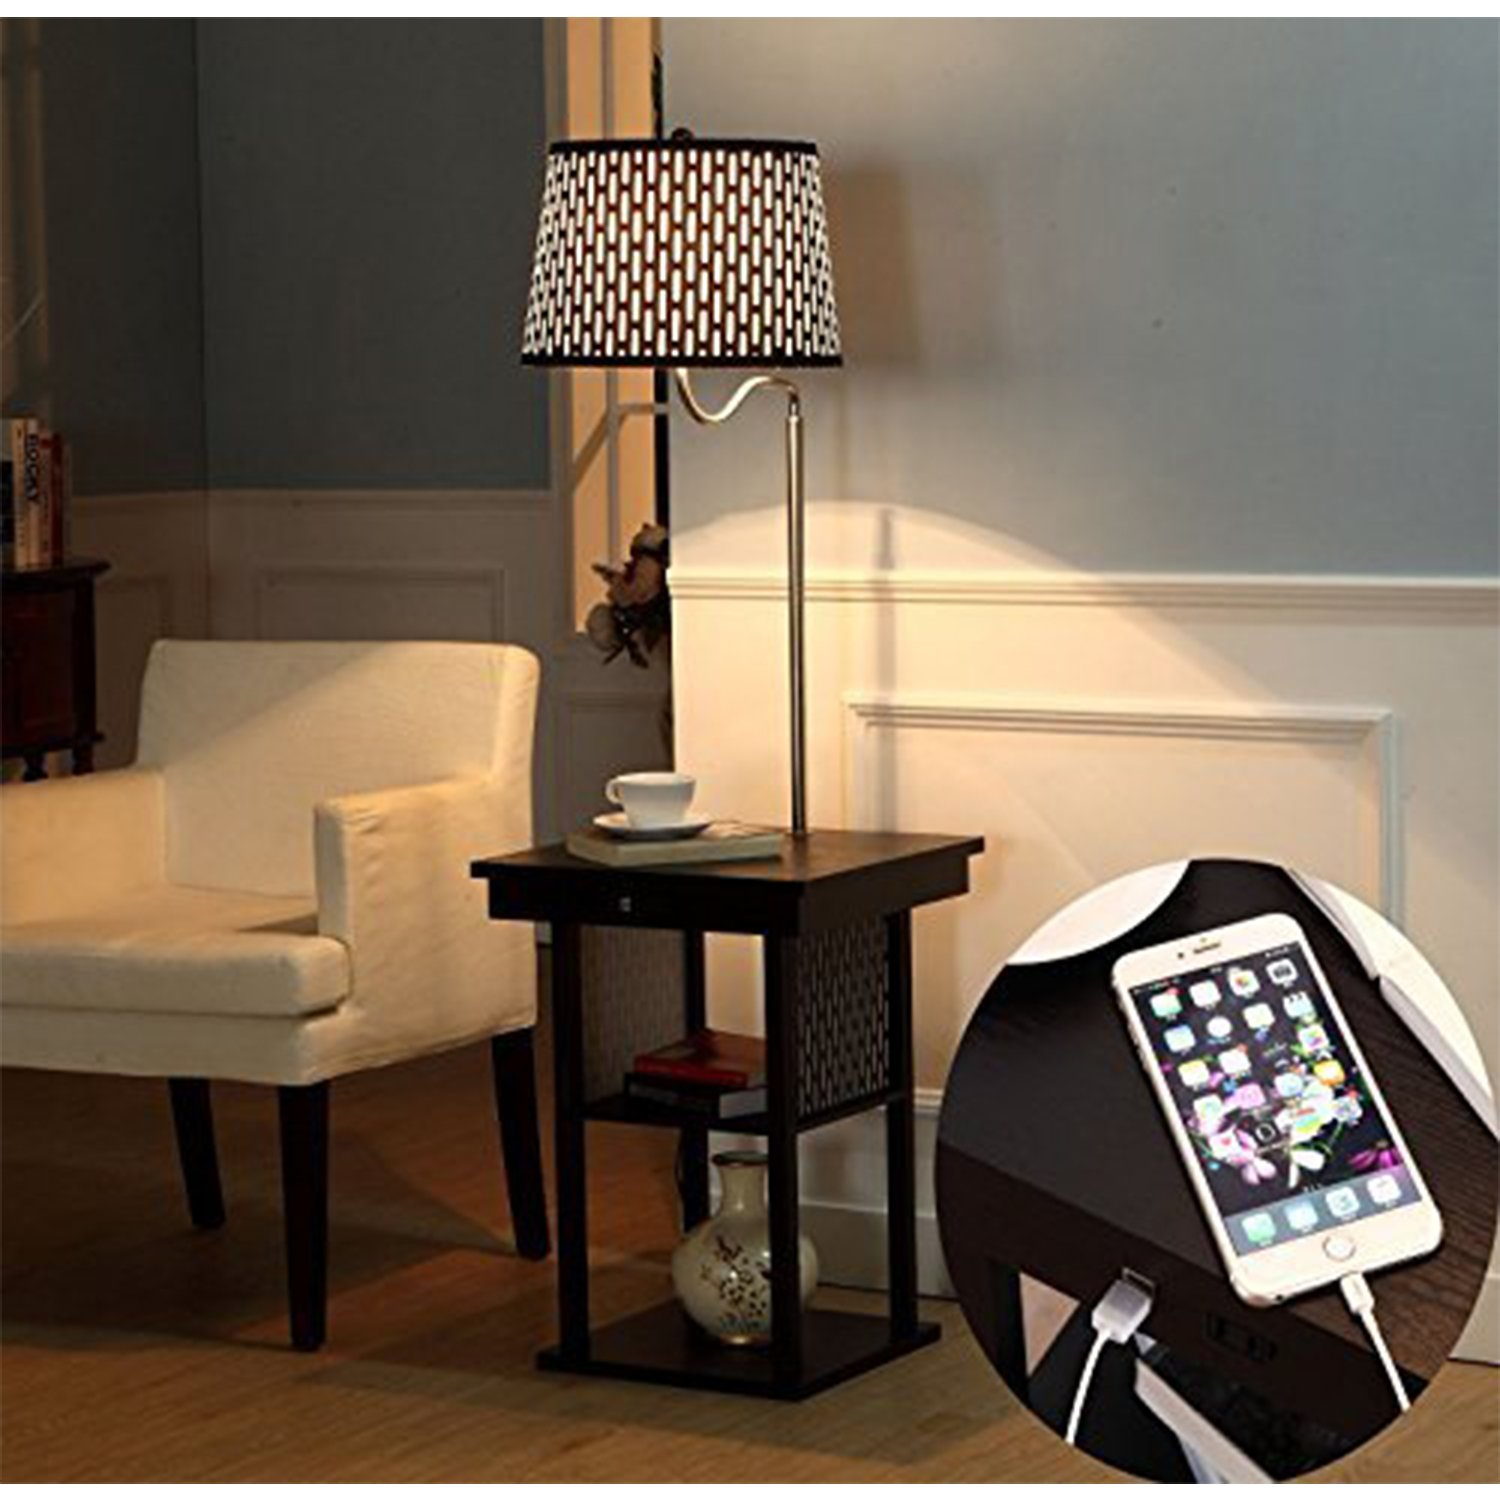 End Table With Built In Lamp - Brightech madison led floor lamp swing arm lamp w shade built in end table shelf includes 2 usb ports 1 us electric outlet bedside table lamp for